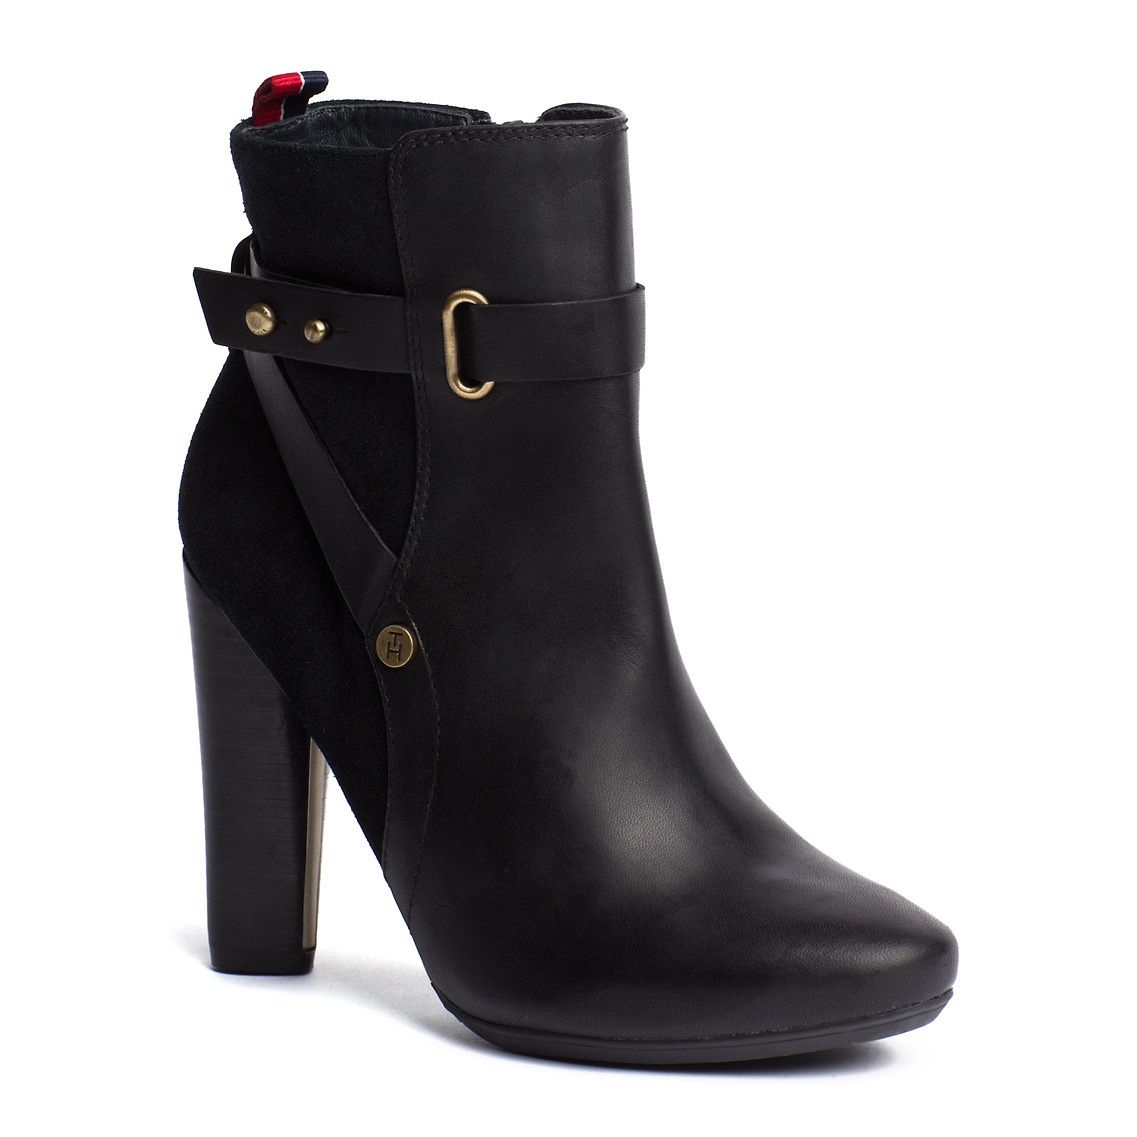 tommy hilfiger hailey ankle boots in black lyst. Black Bedroom Furniture Sets. Home Design Ideas